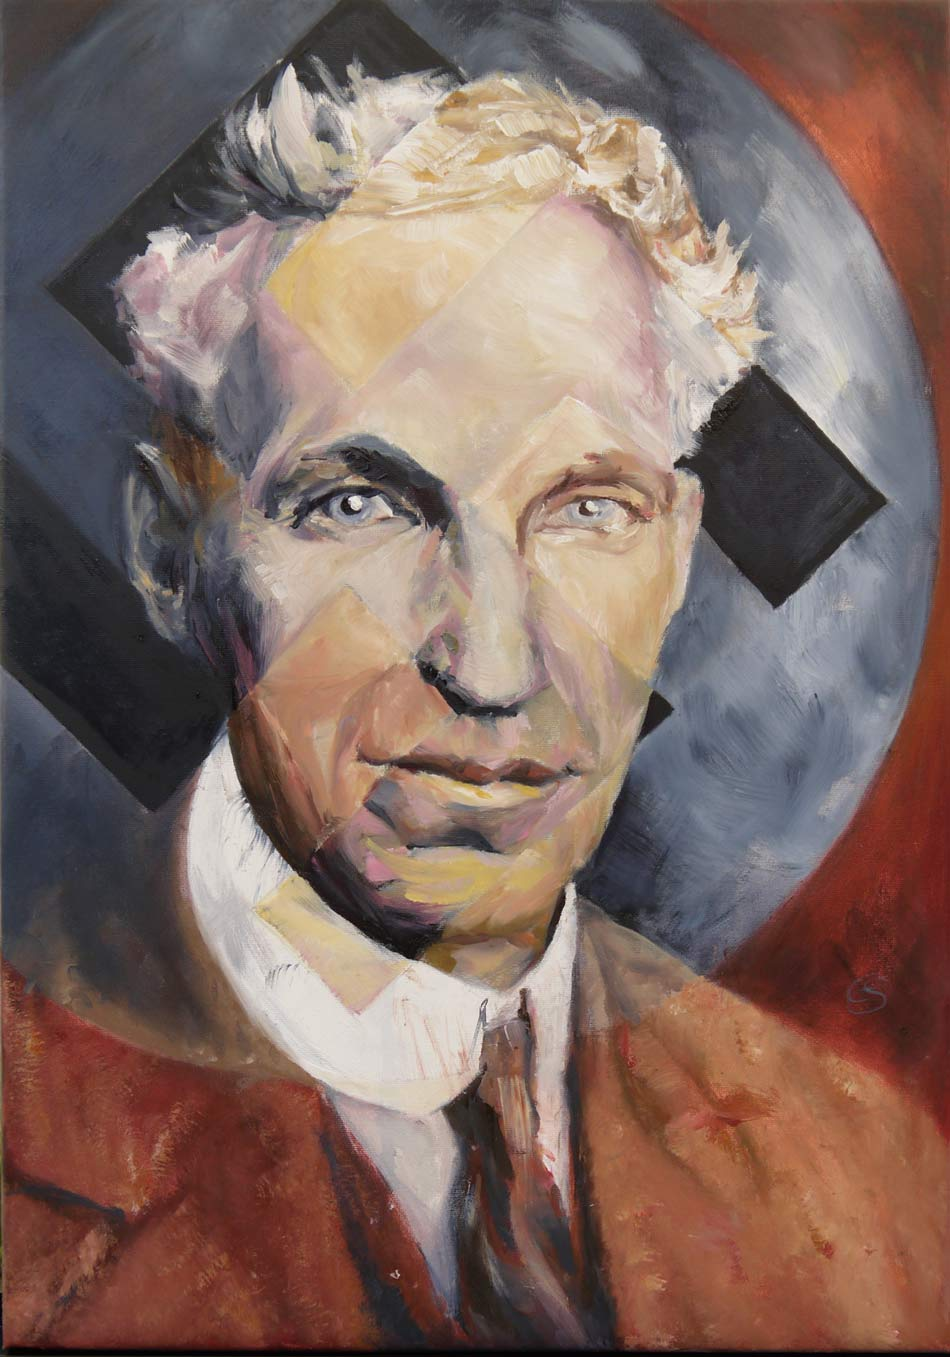 Mr. Henry Ford - oilpainting by cornelia es said